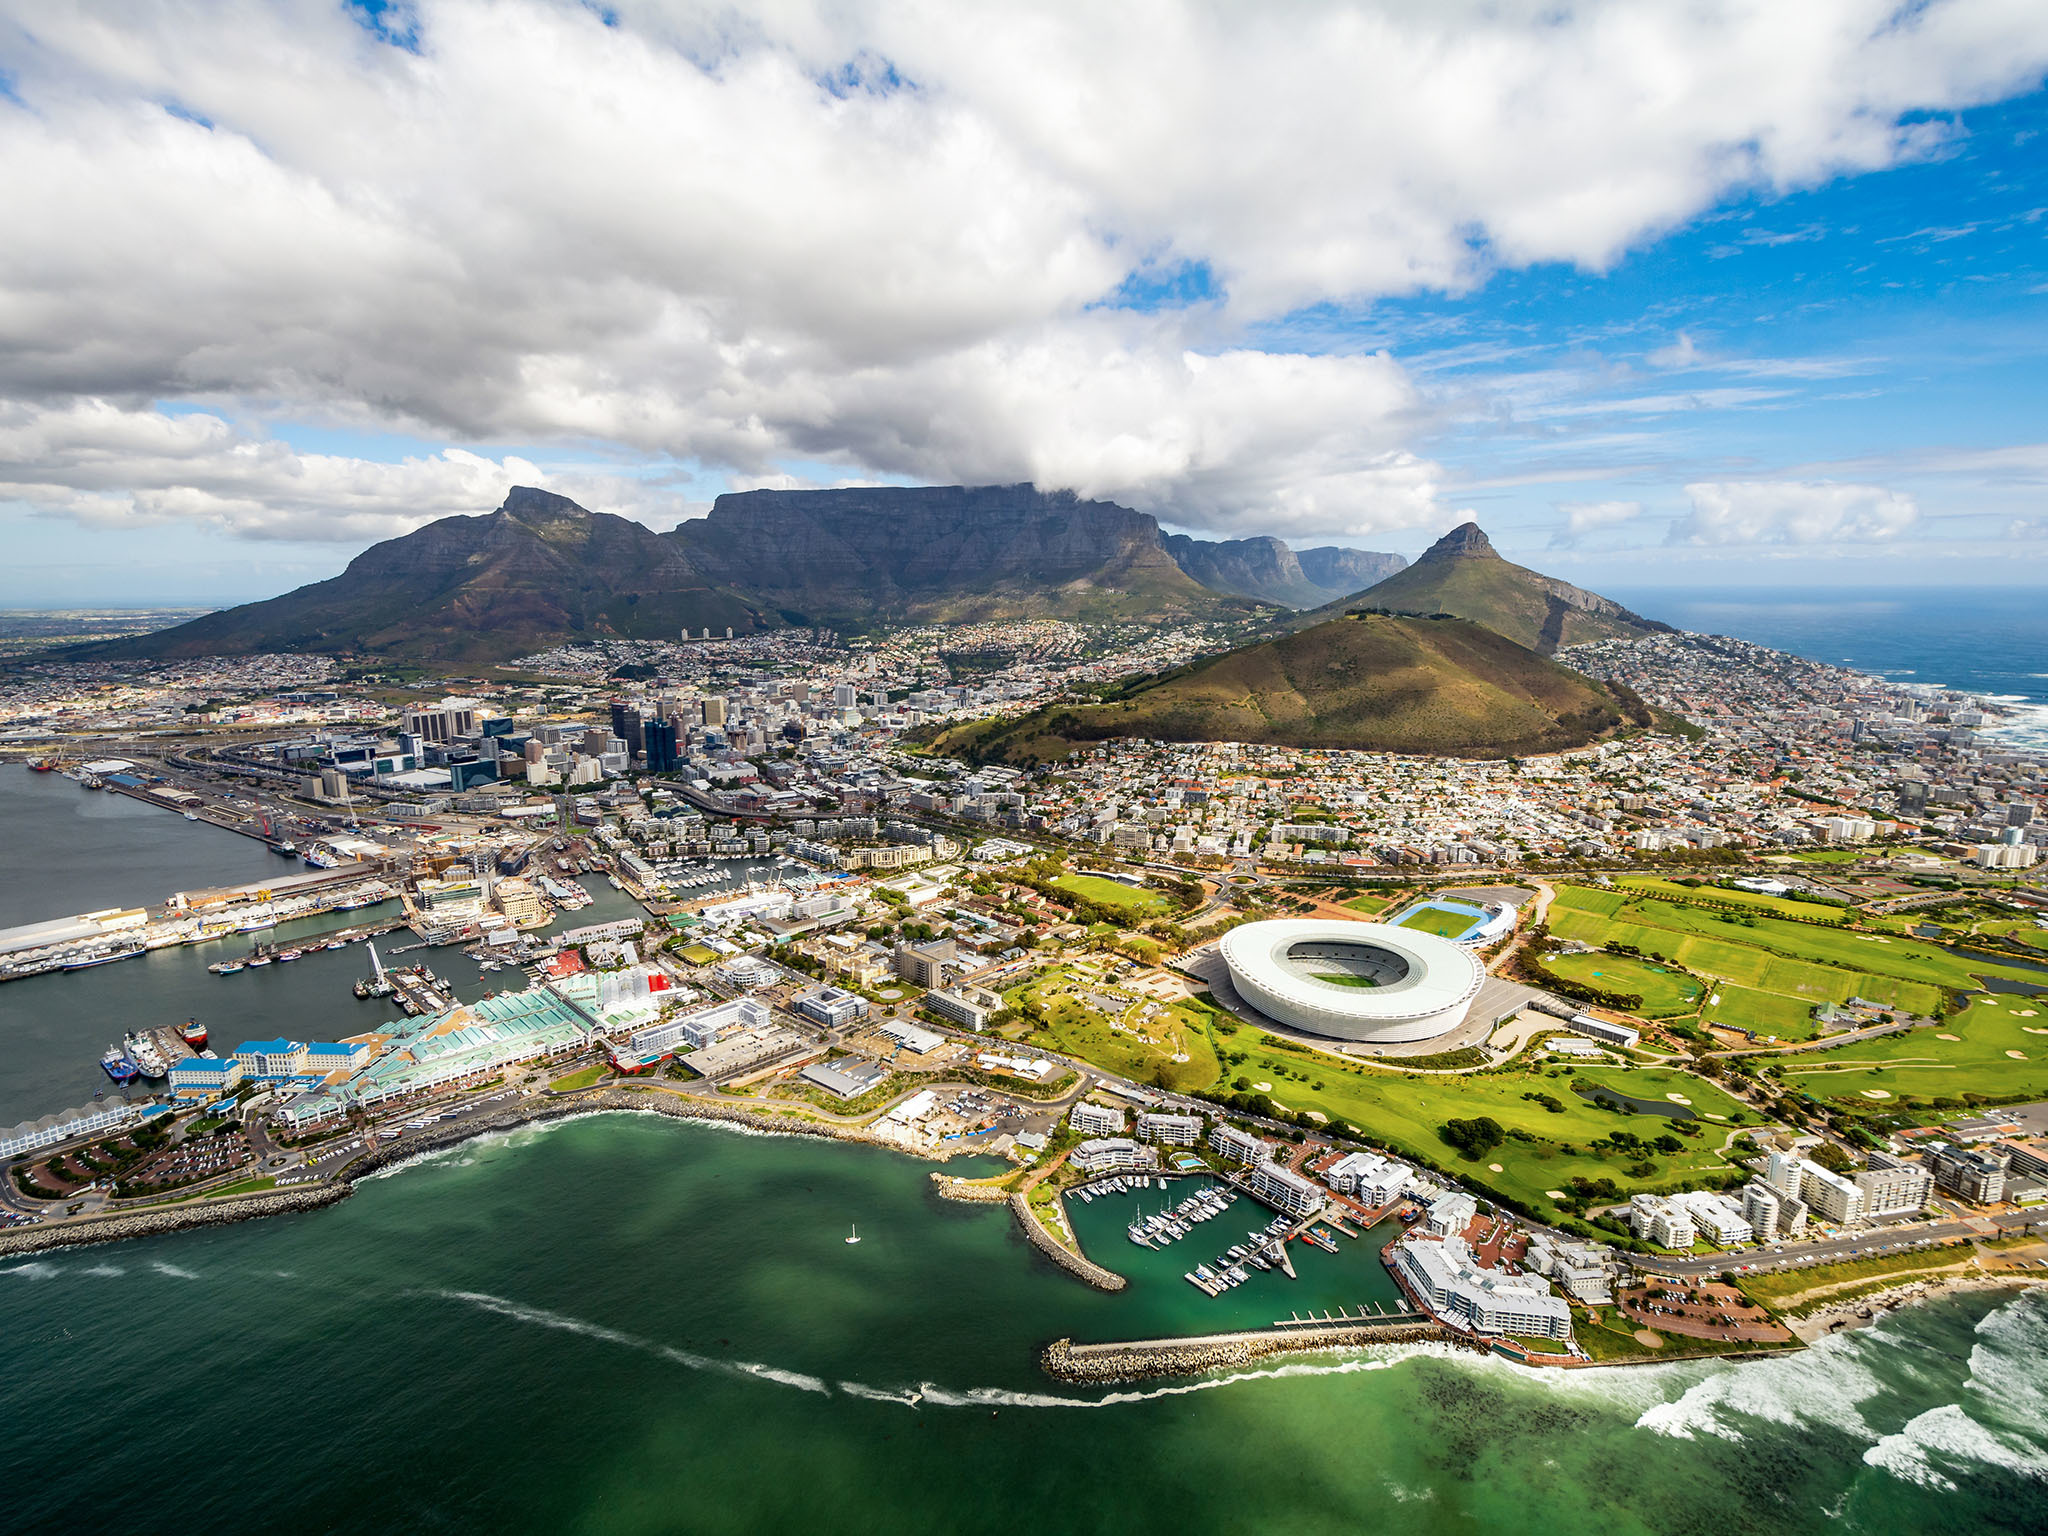 South Africa won't reopen to tourism until 2021